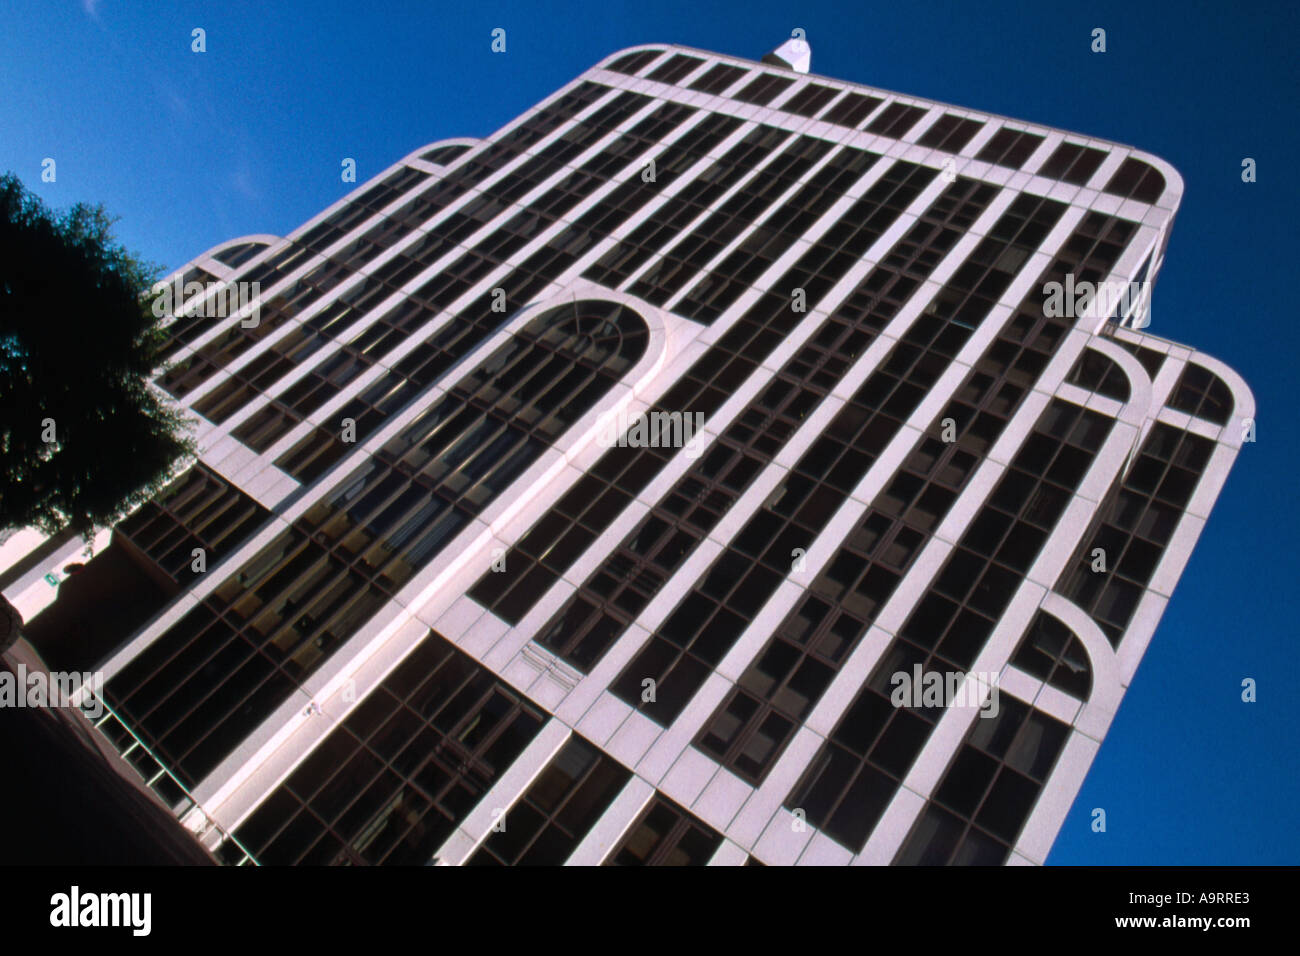 Office block in Bournemouth - Stock Image